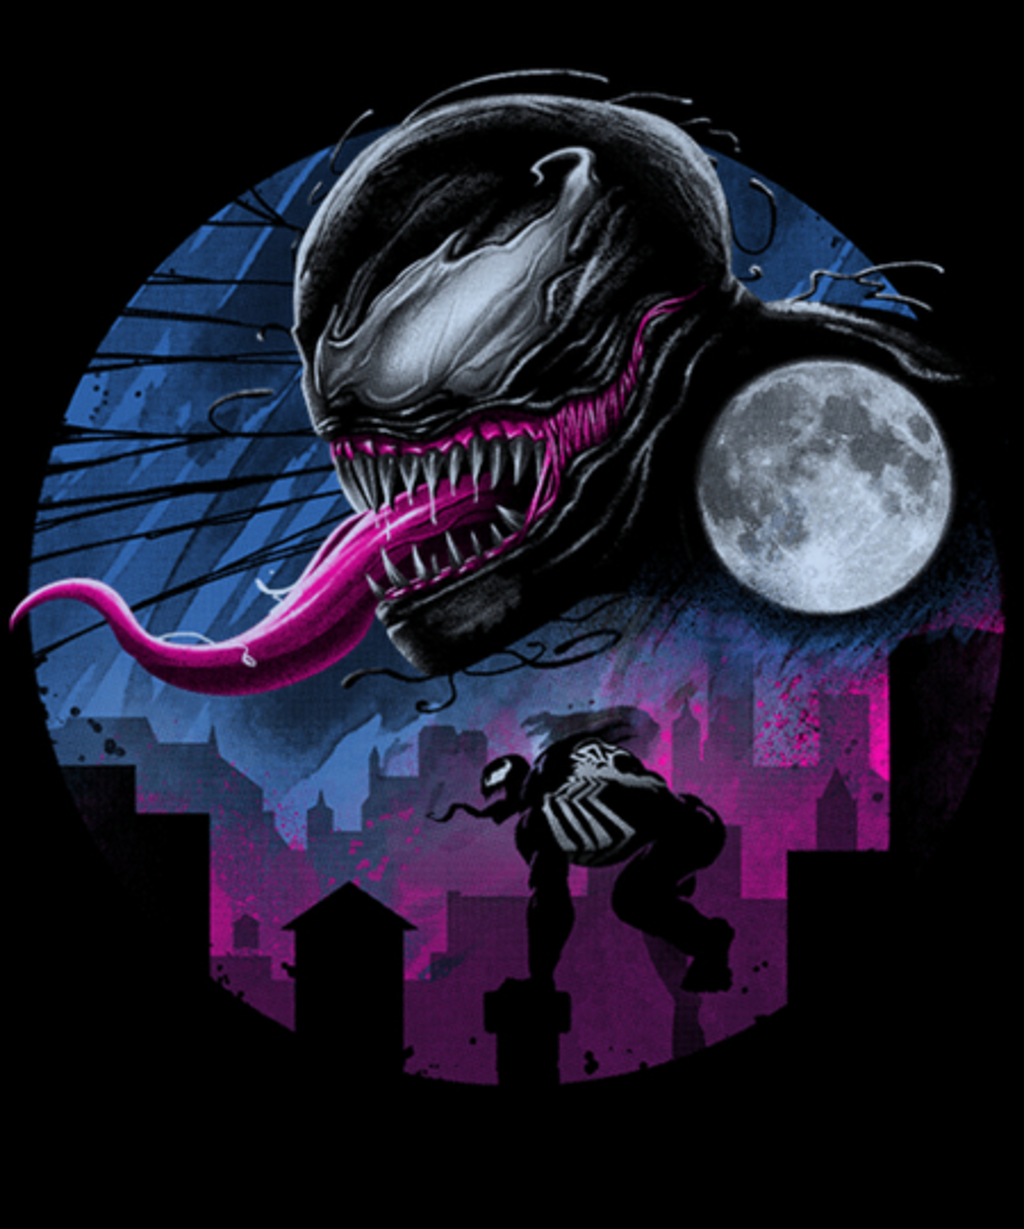 Qwertee: The Symbiote Story